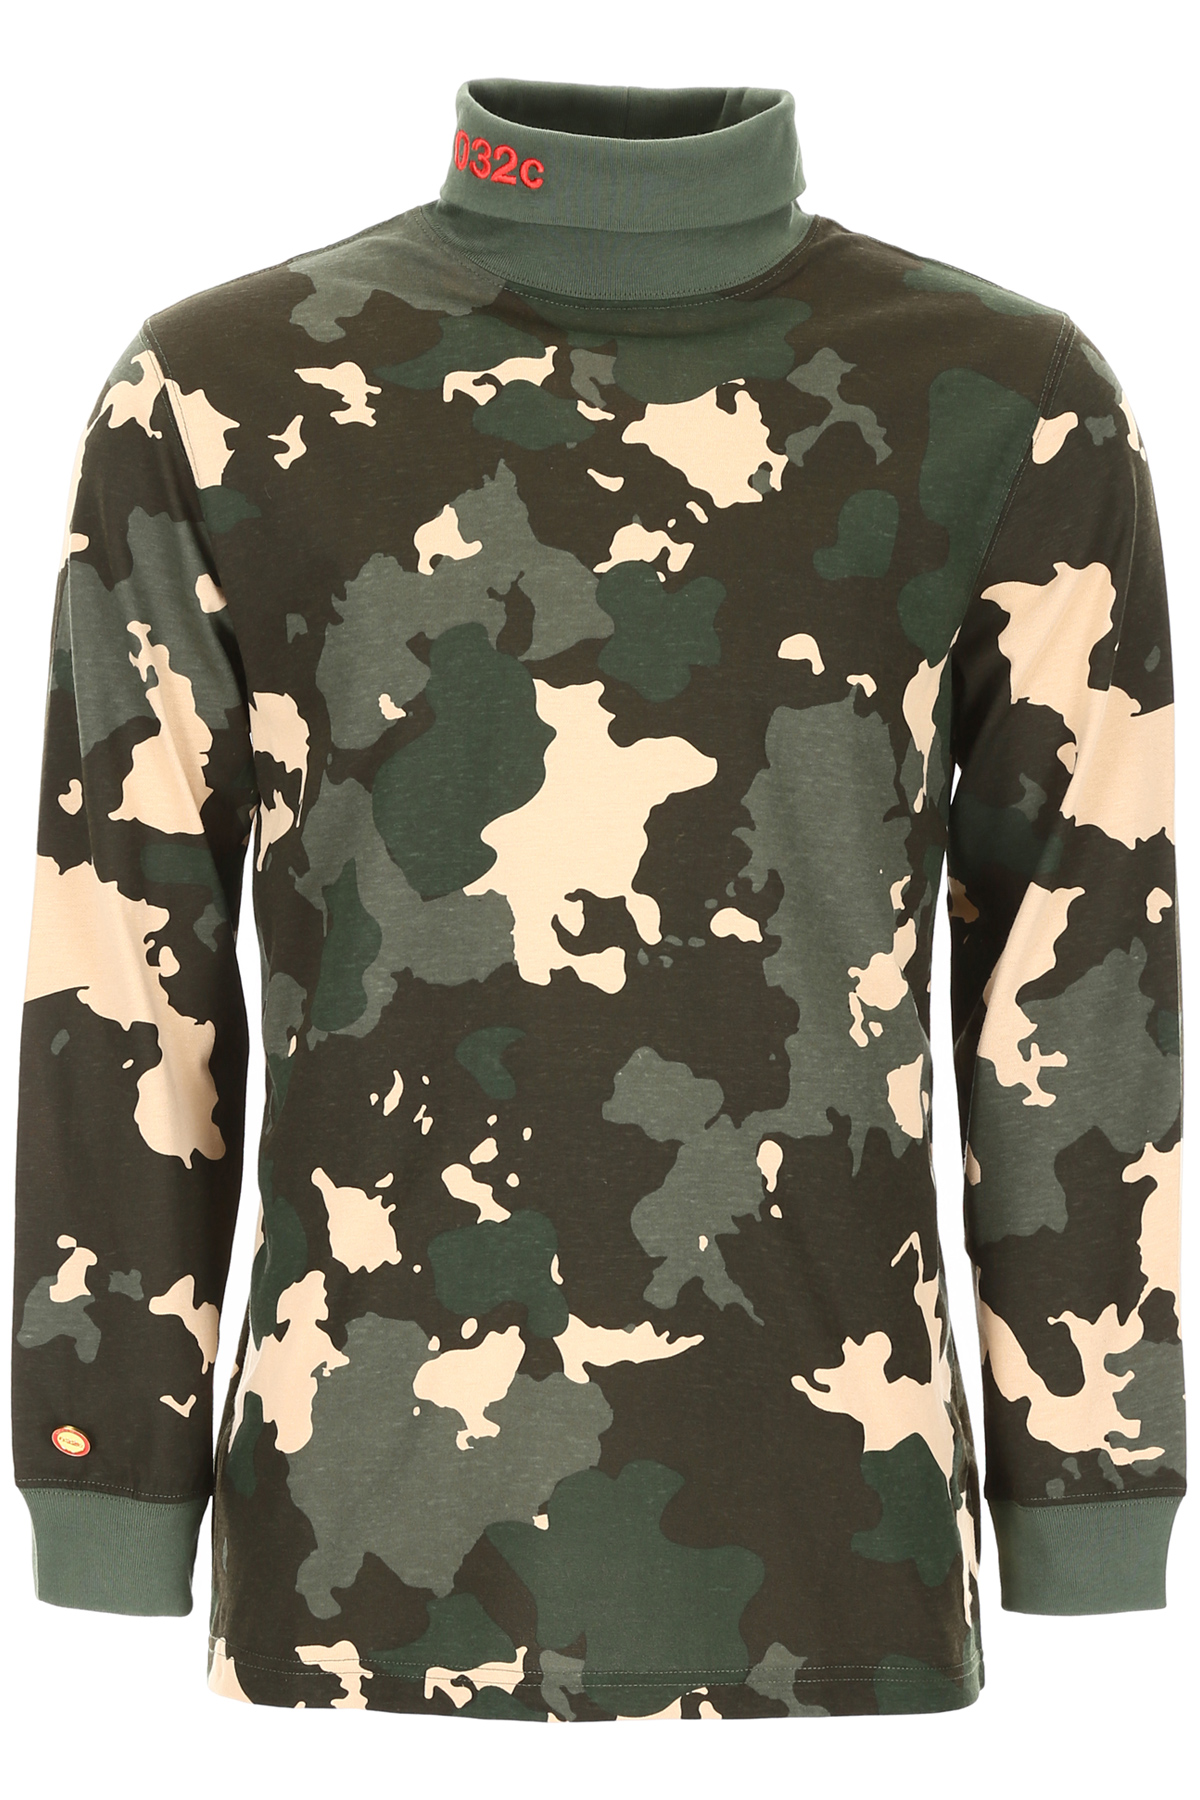 032C CAMOUFLAGE LONG-SLEEVED T-SHIRT S Beige Cotton